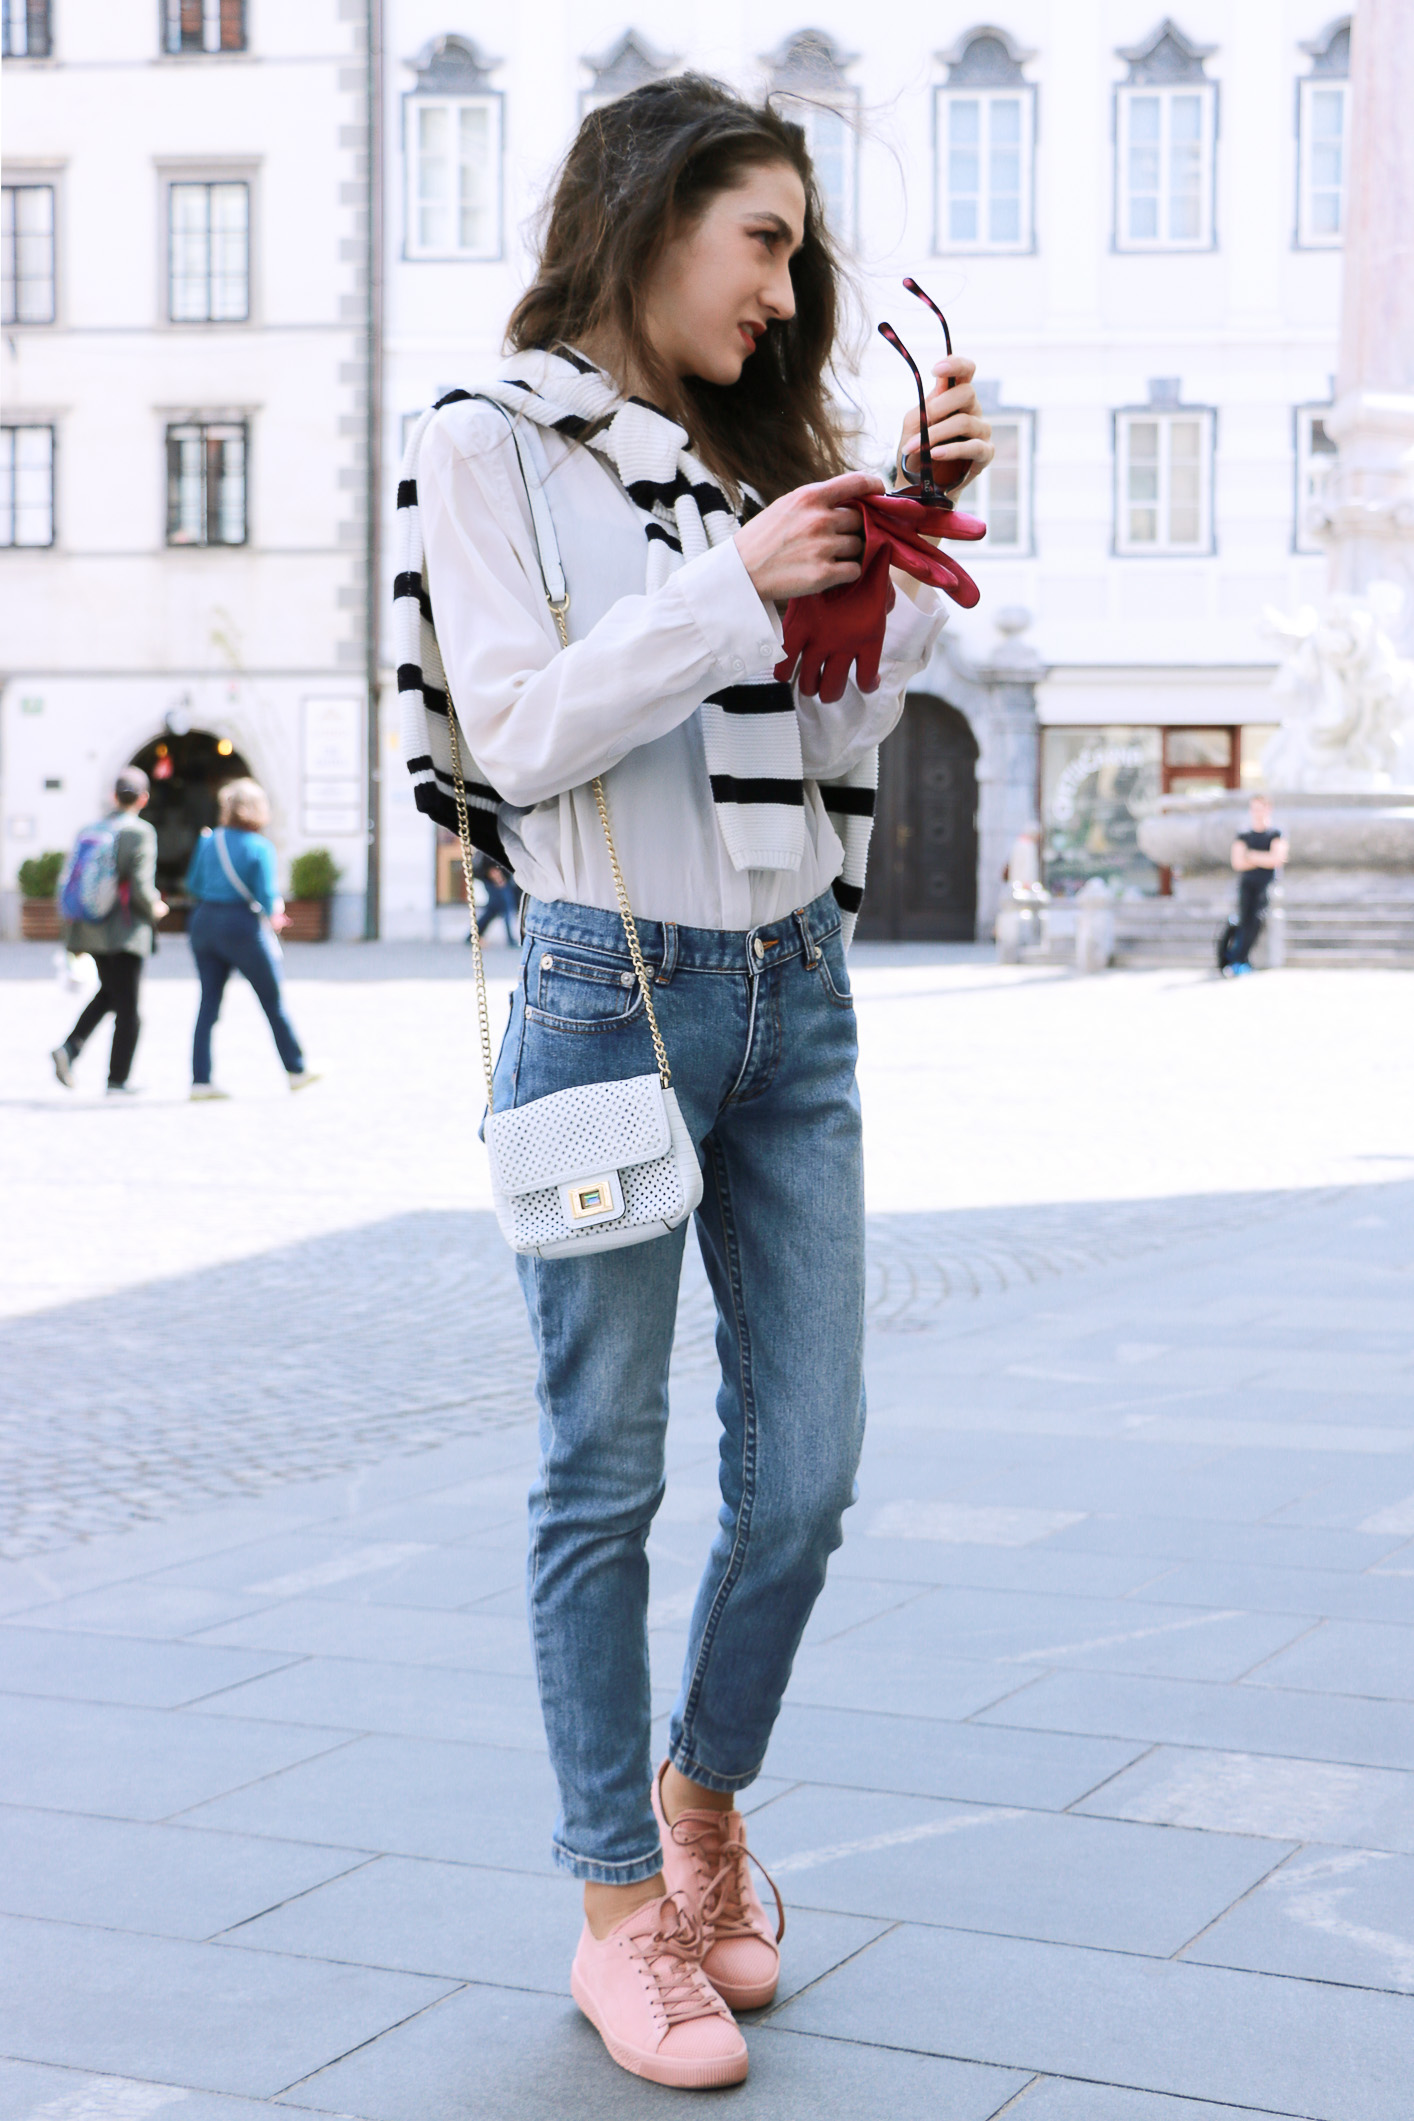 Fashion blogger Veronika Lipar of Brunette From Wall Street sharing her casual chic weekend style in light blue denim, pale pink sneakers, and black and white striped top